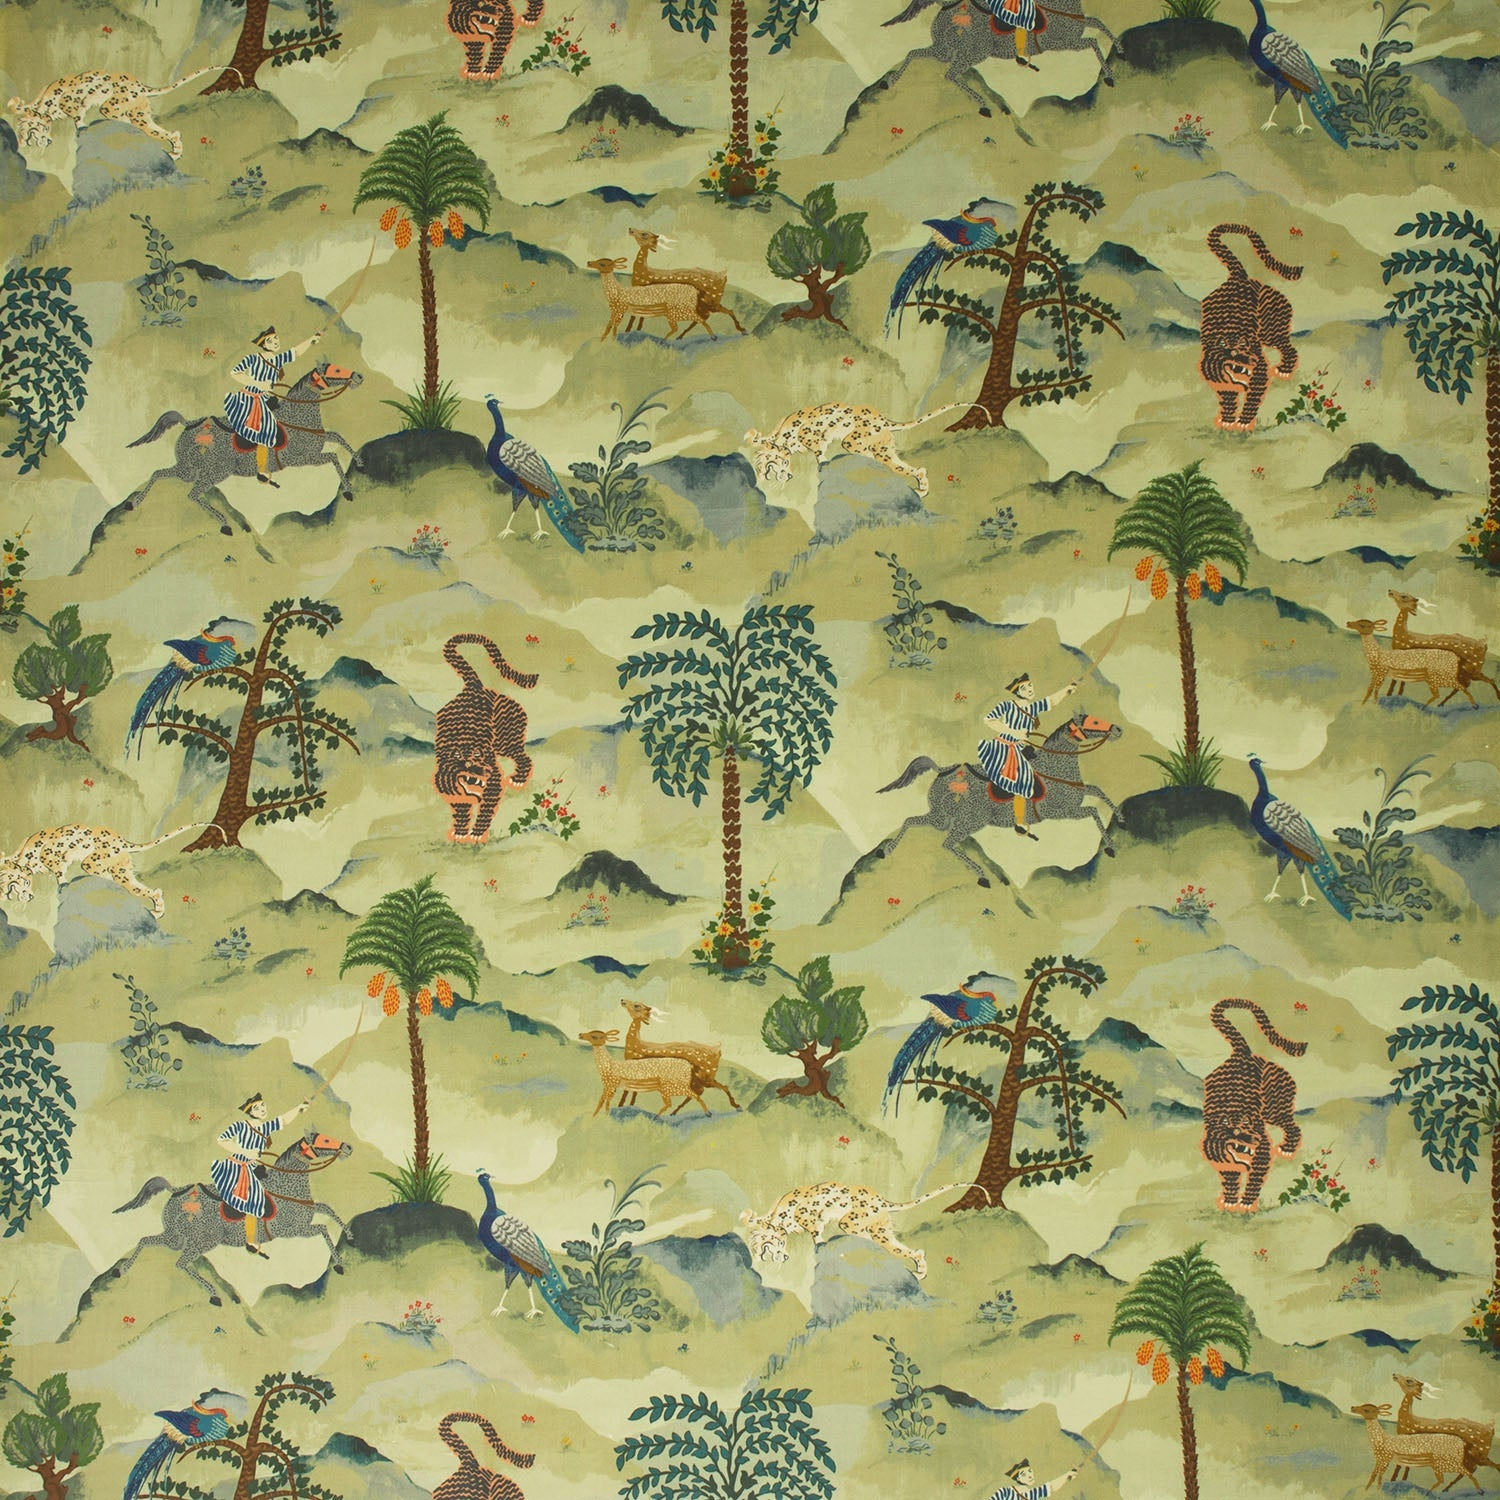 Fabric swatch of a green cotton velvet fabric for curtains and upholstery with painted animals and characters